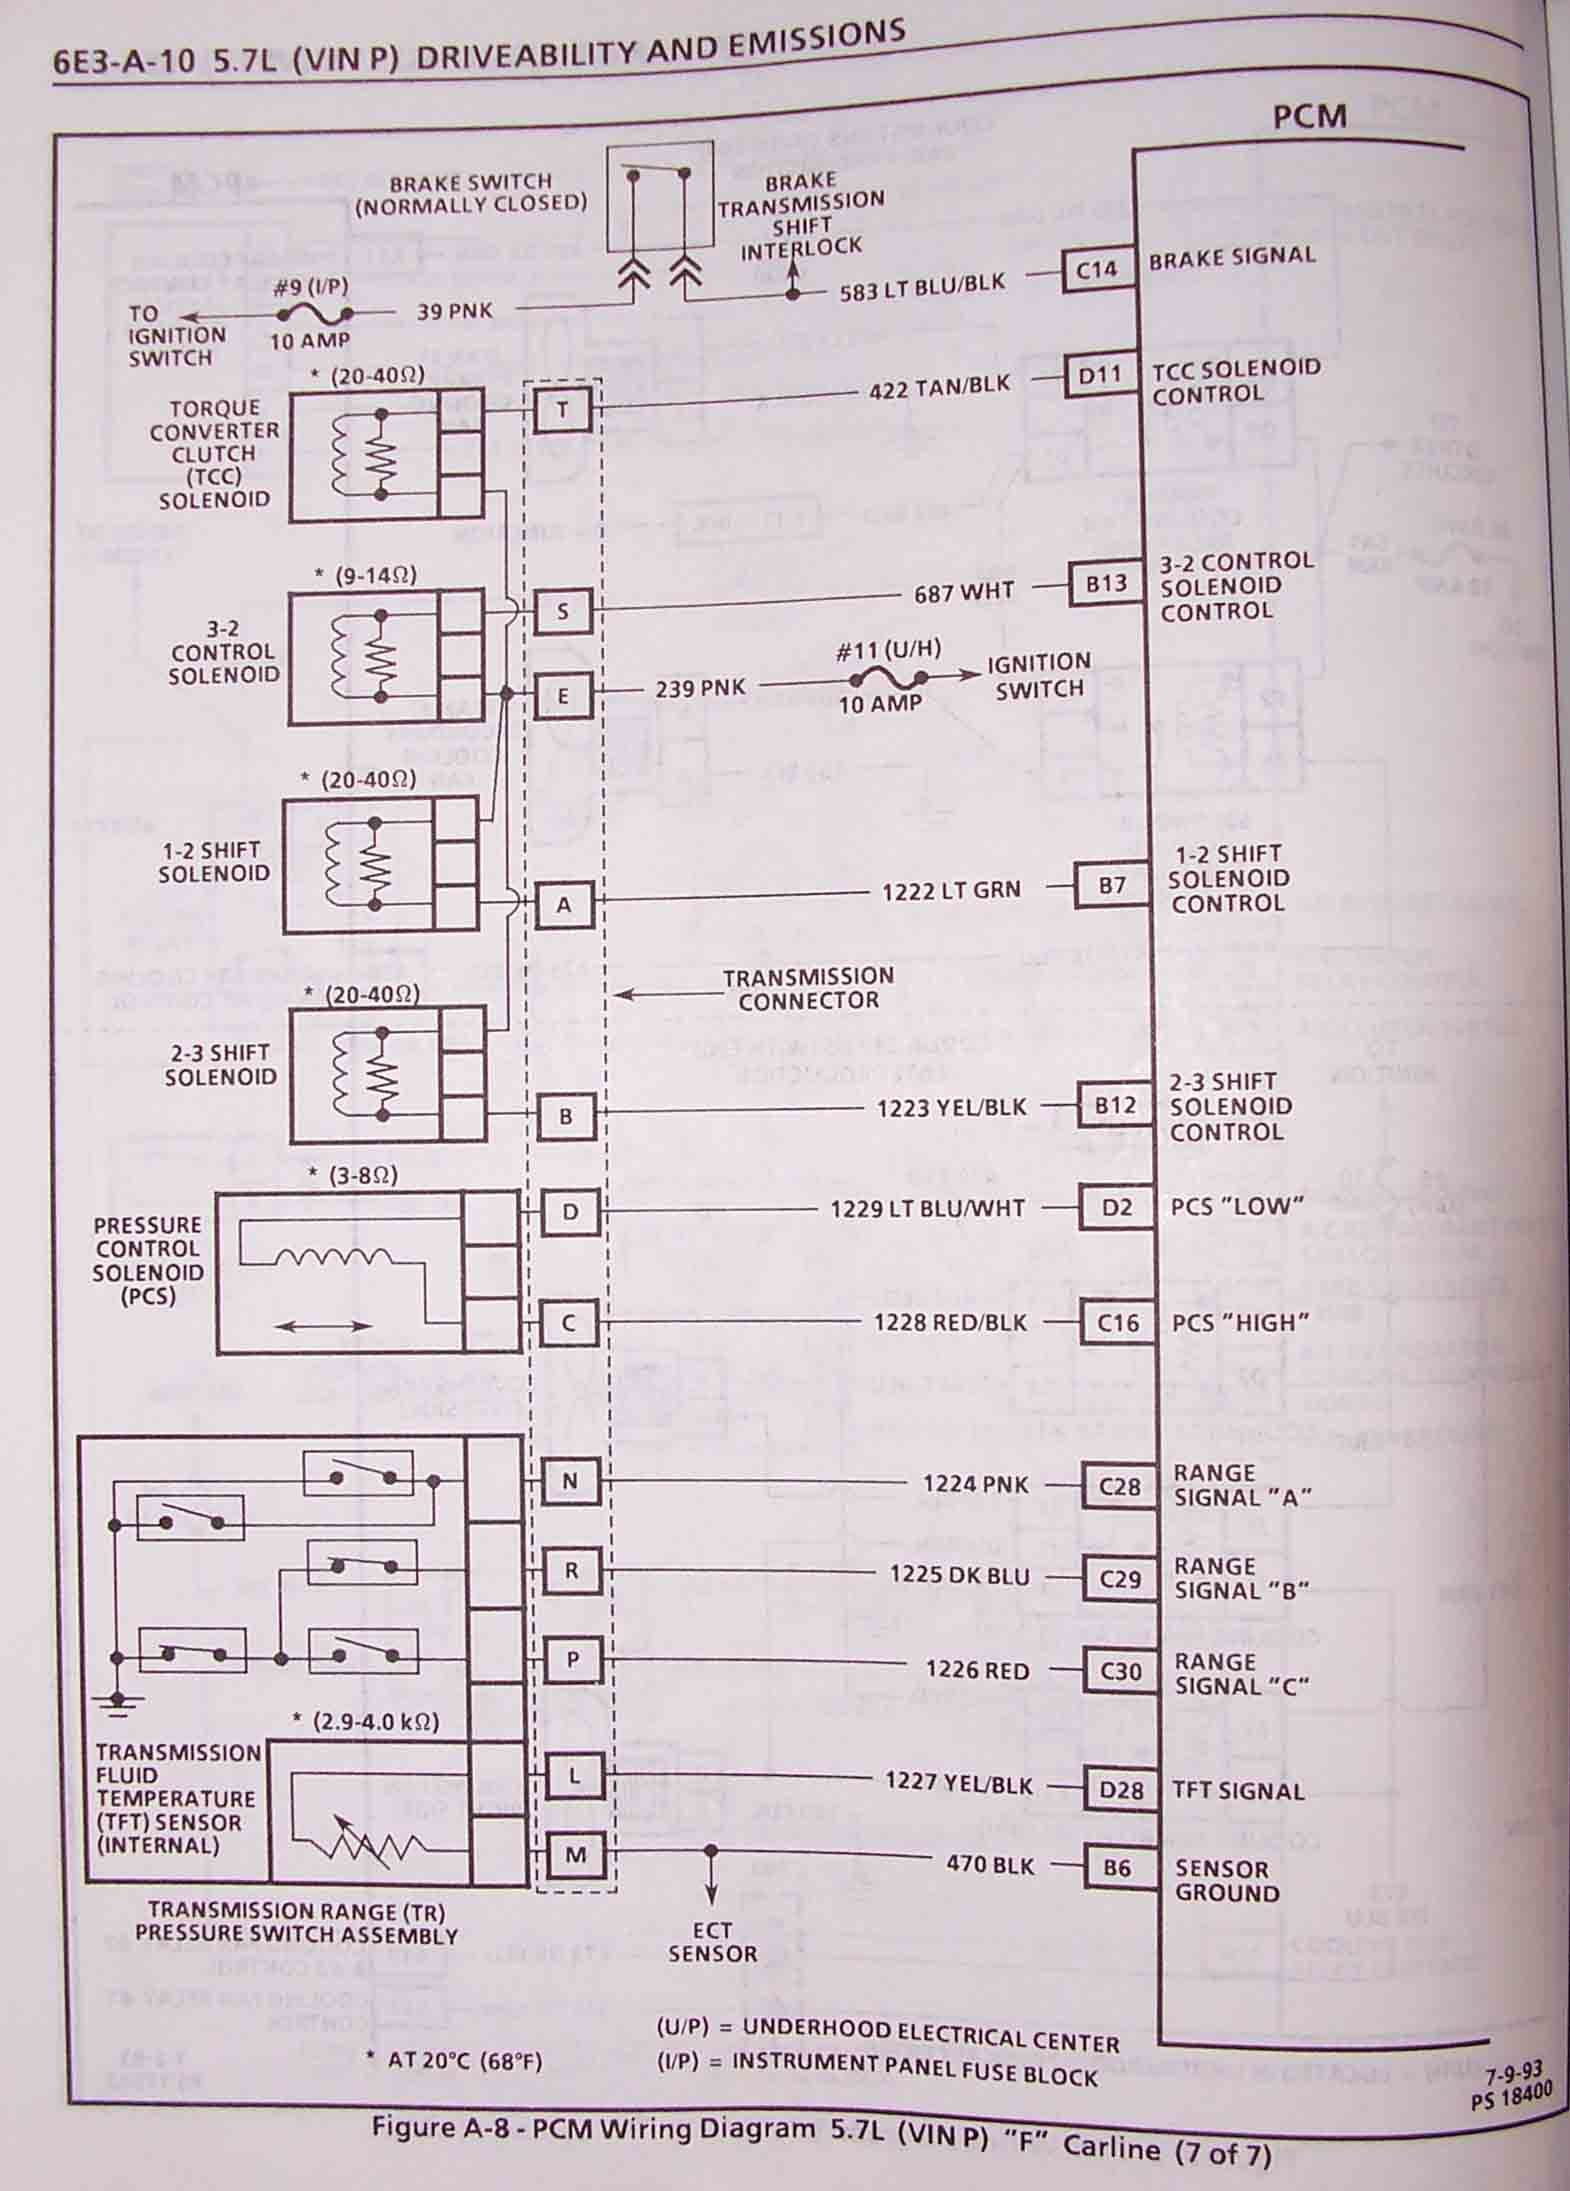 1995 F Body Wire Harness Schematics 1997 Camaro Fuse Box These Are Specifically For 1994 Firebird 57l Lt1 However Will Be Very Similar To